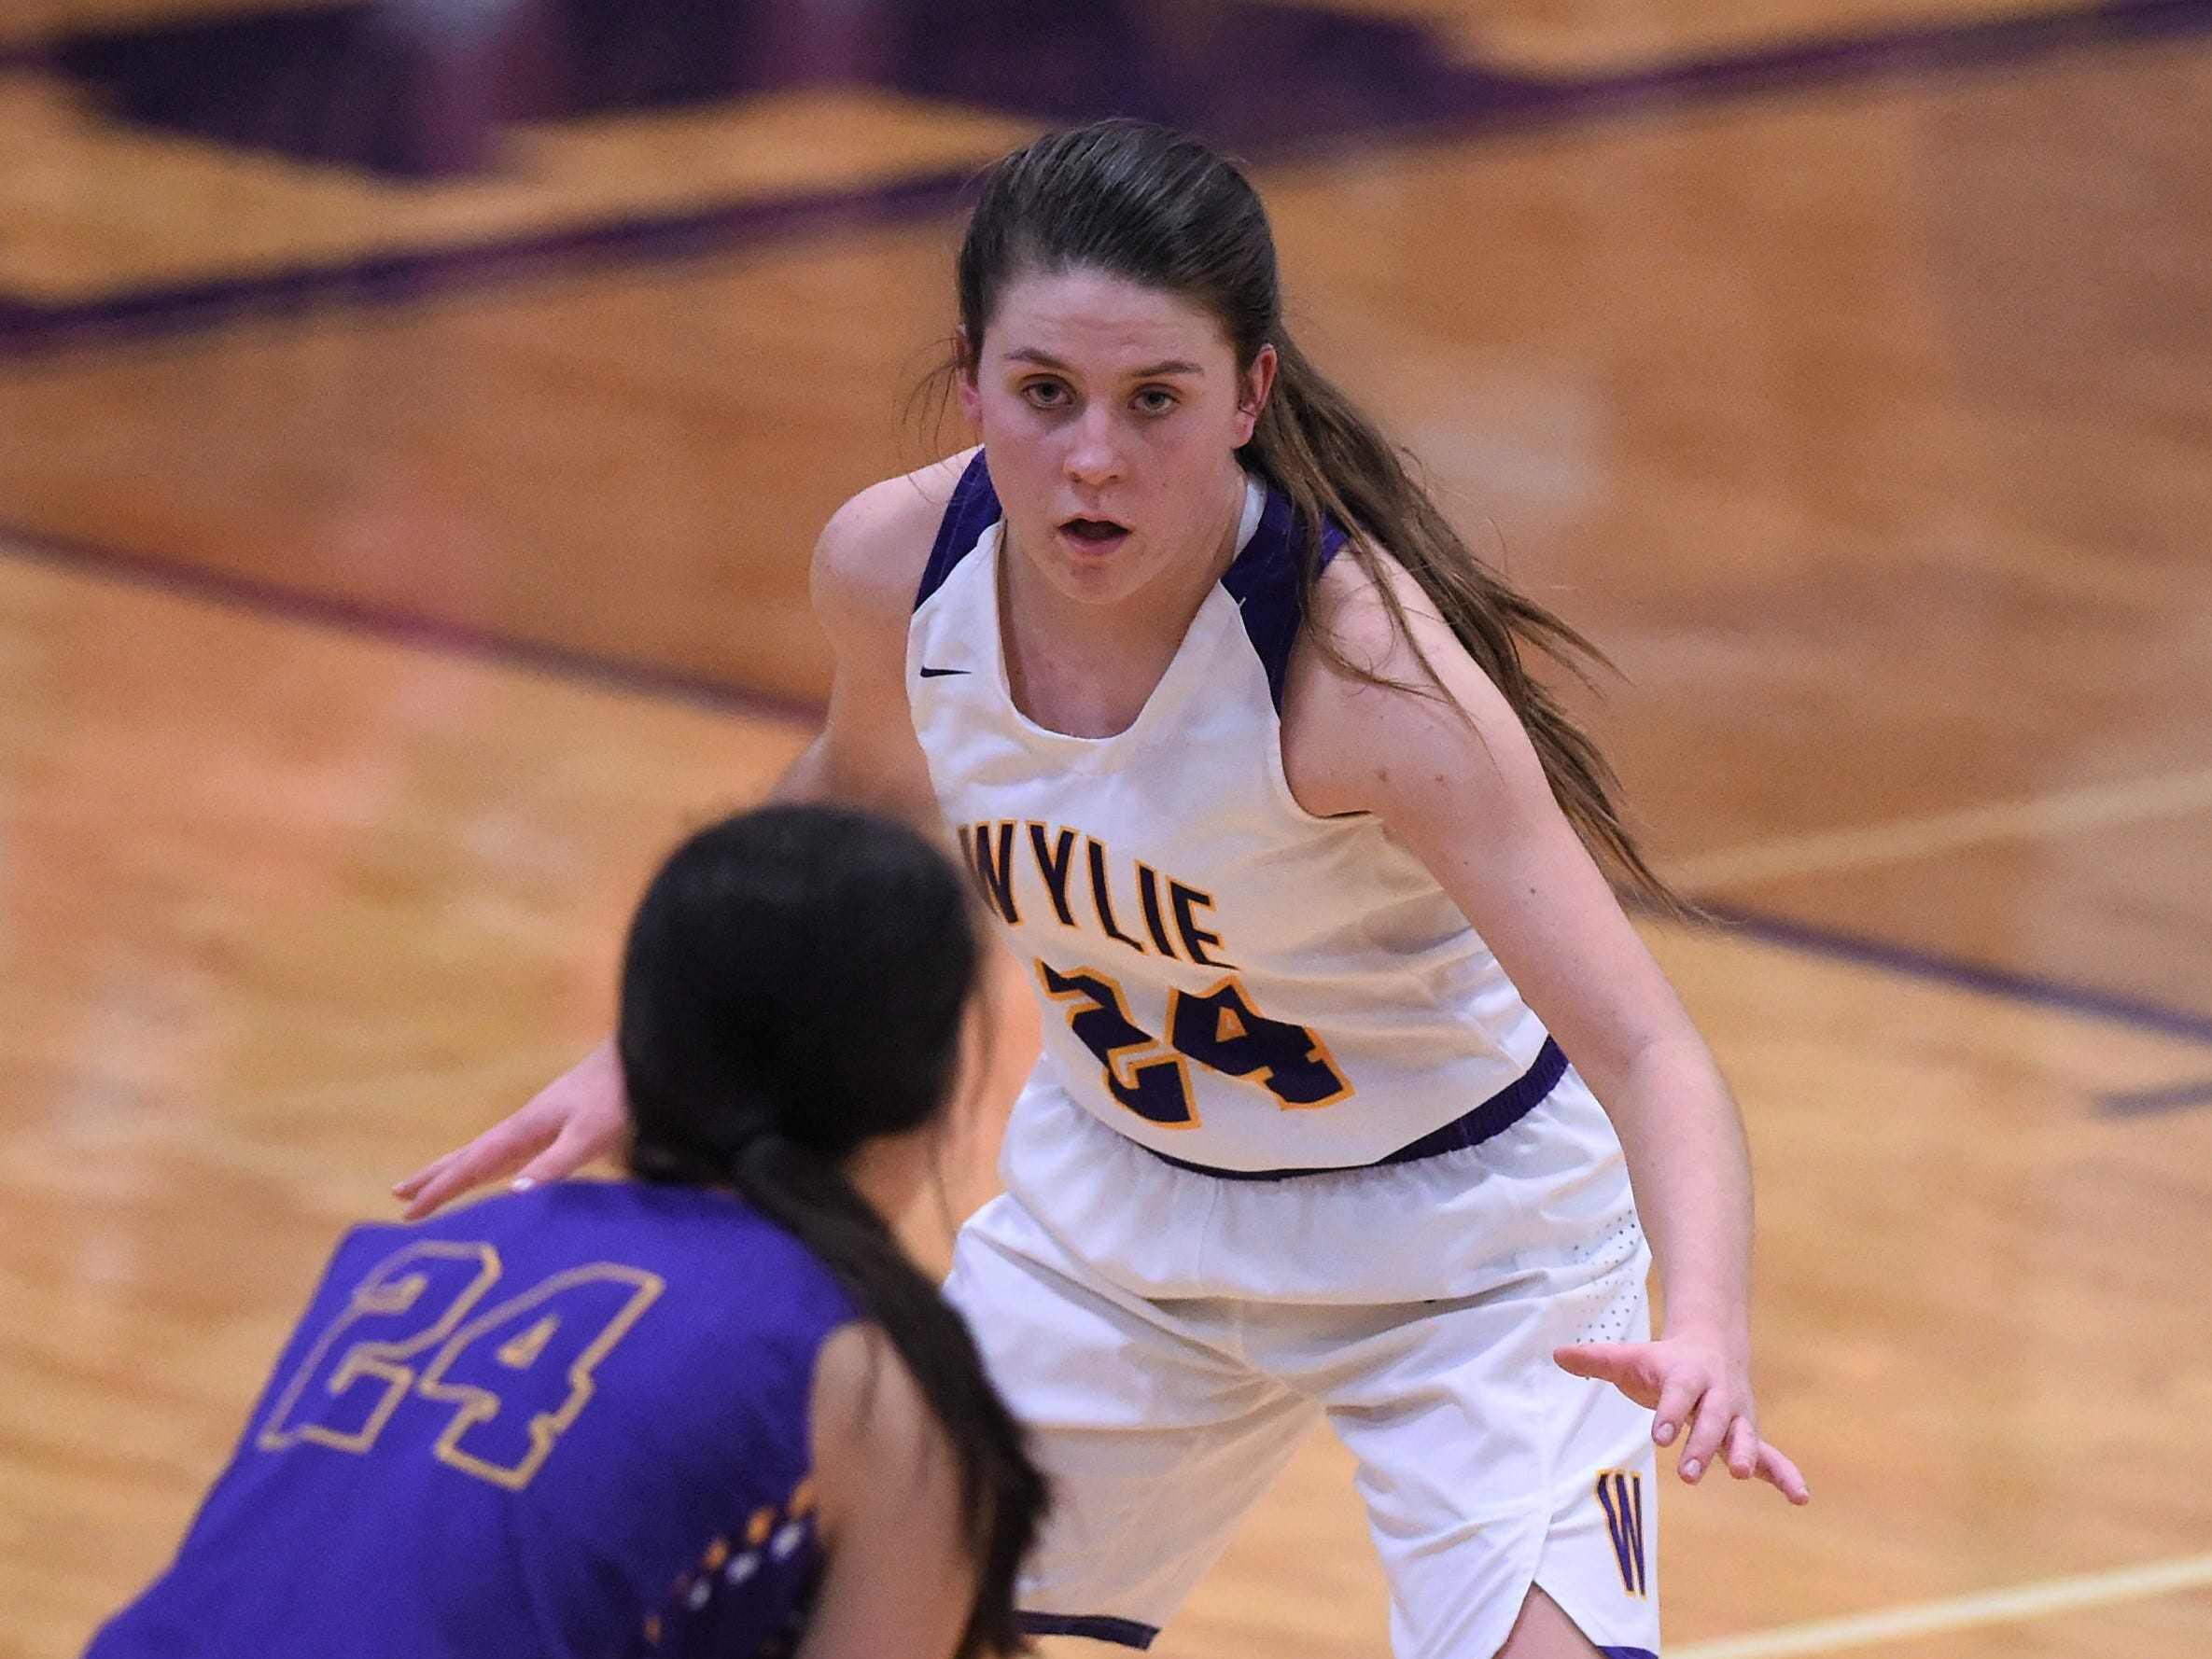 Wylie guard Mary Lovelace (24) guards Merkel's Alyssa O'Malley (24) in the Coaches vs. Cancer Pink Out game on Tuesday, Dec. 4, 2018. The Lady Bulldogs won 75-39.